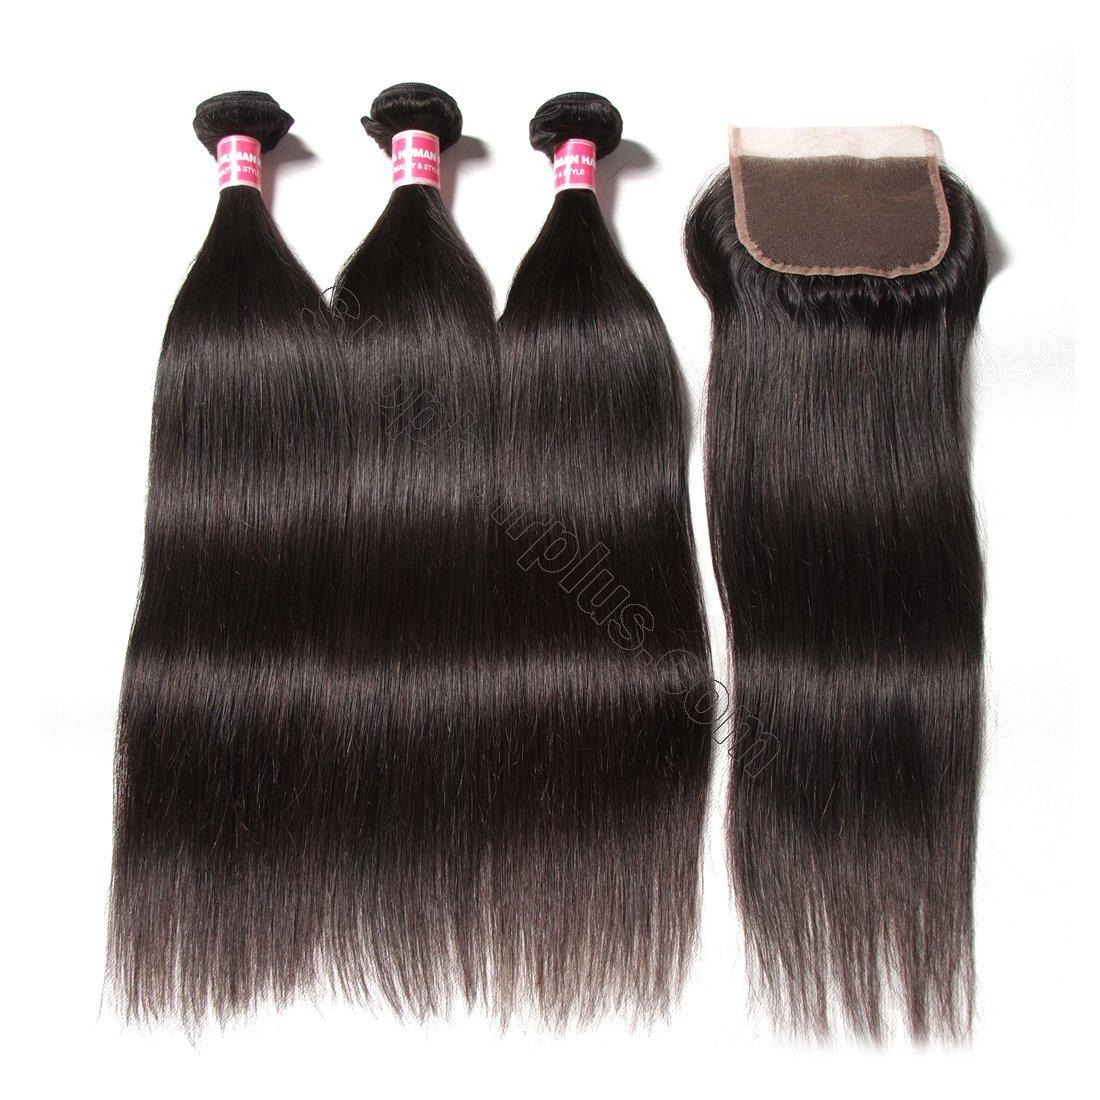 7A Malaysian Straight Virgin Hair 3Bundles with 4x4 Lace Closure 4